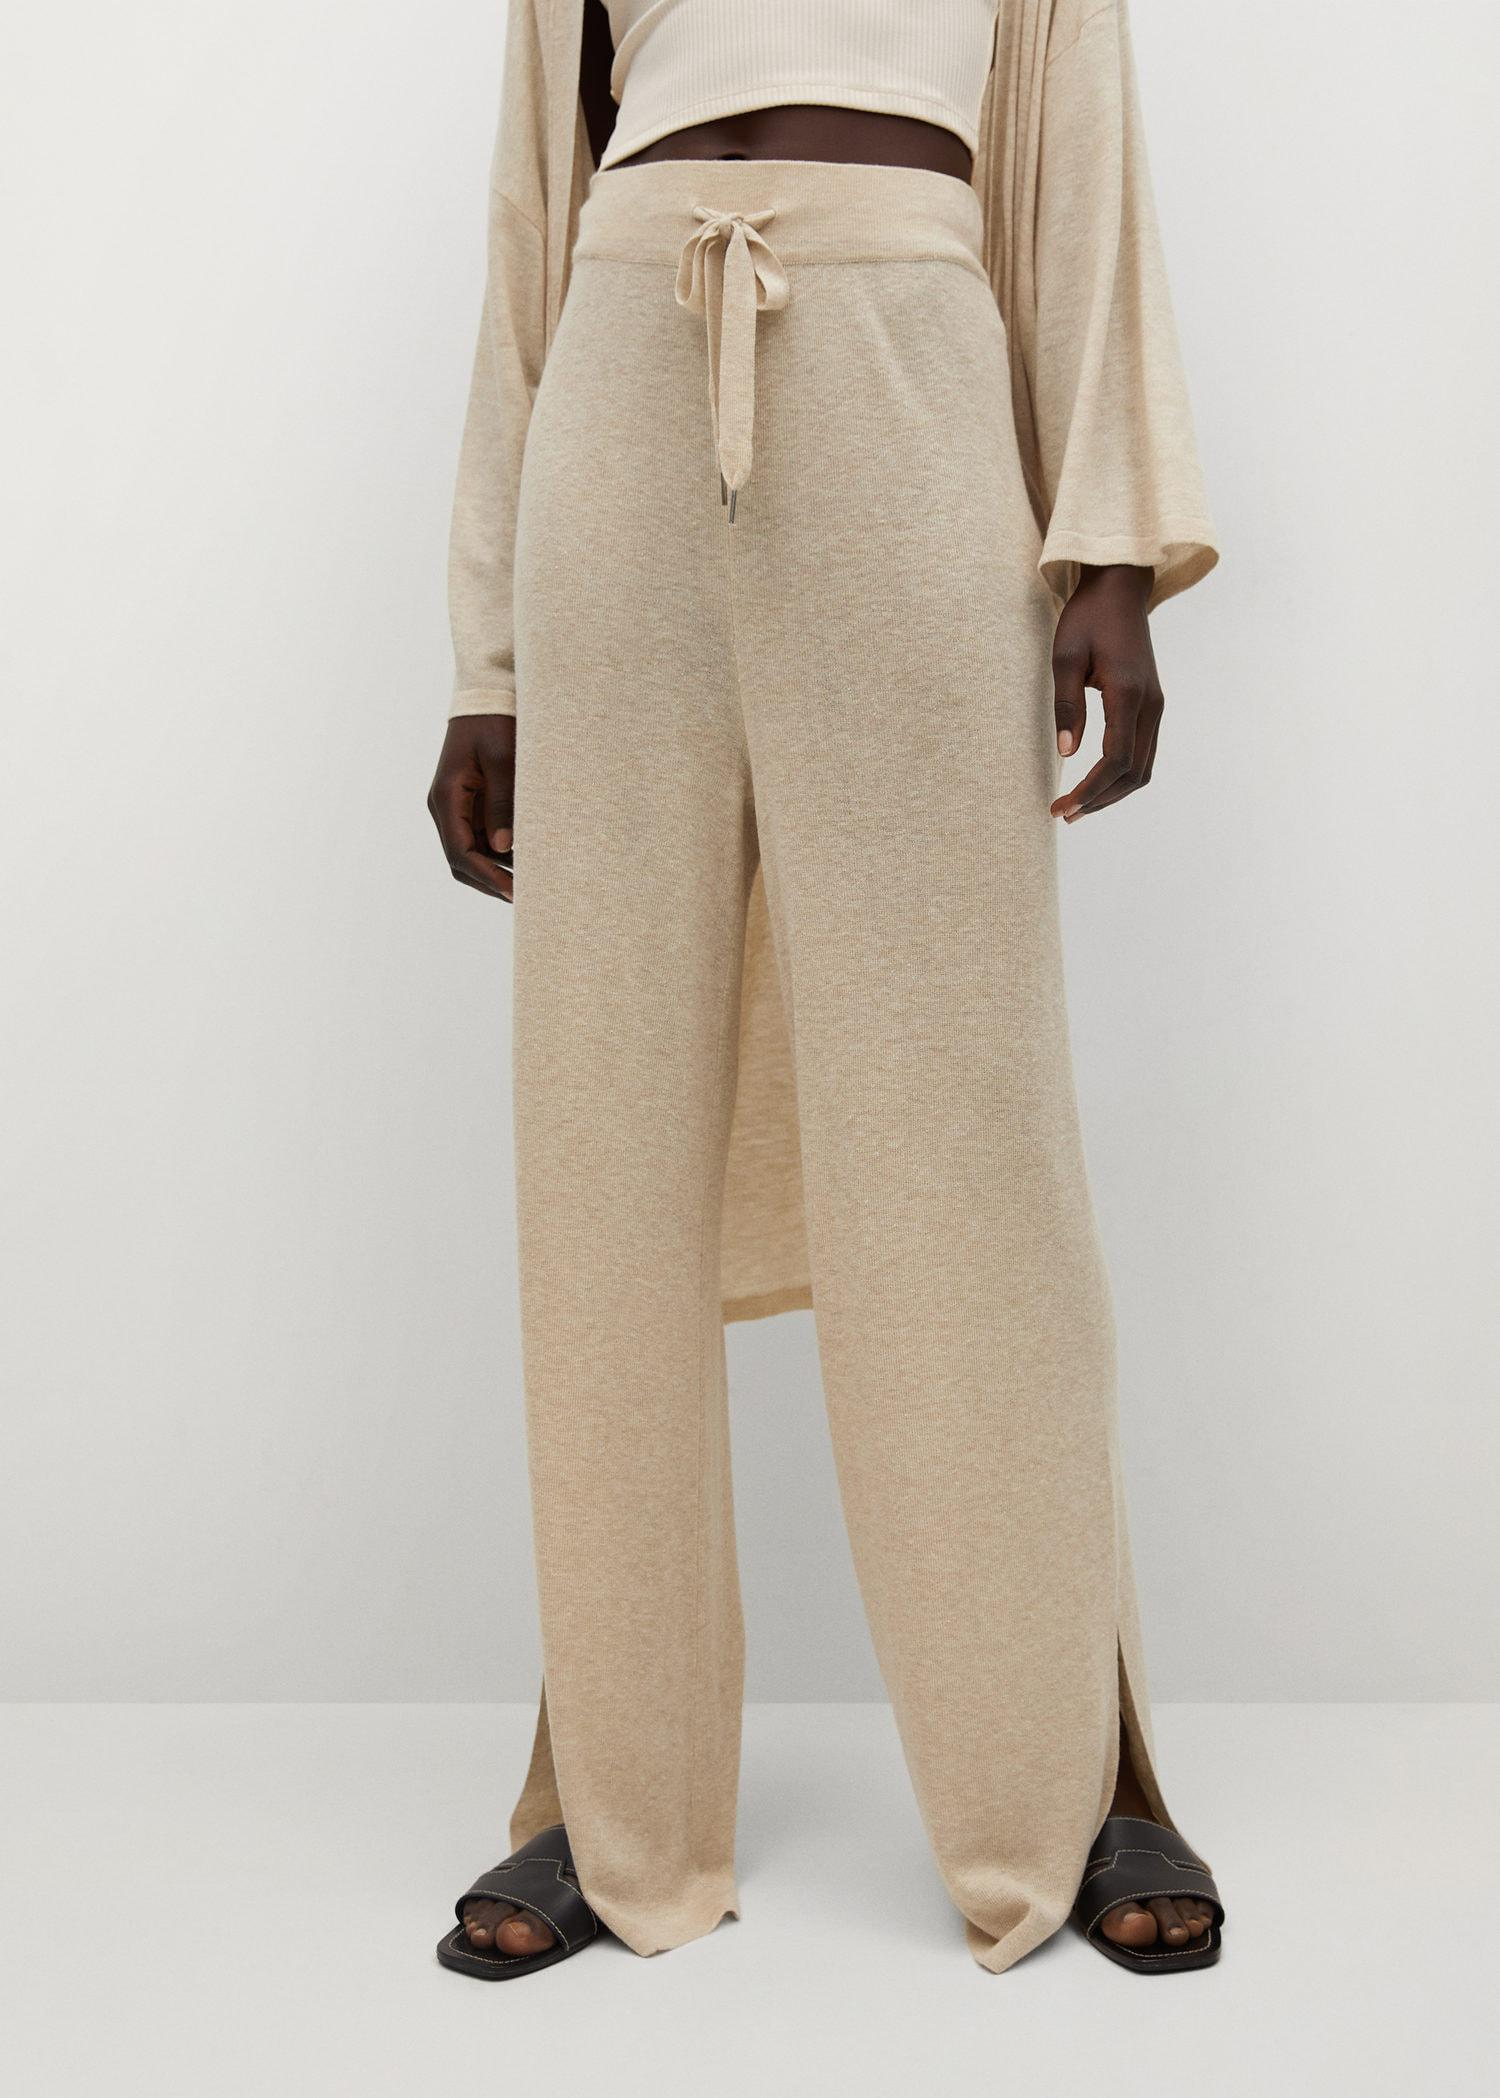 Knitted linen pants